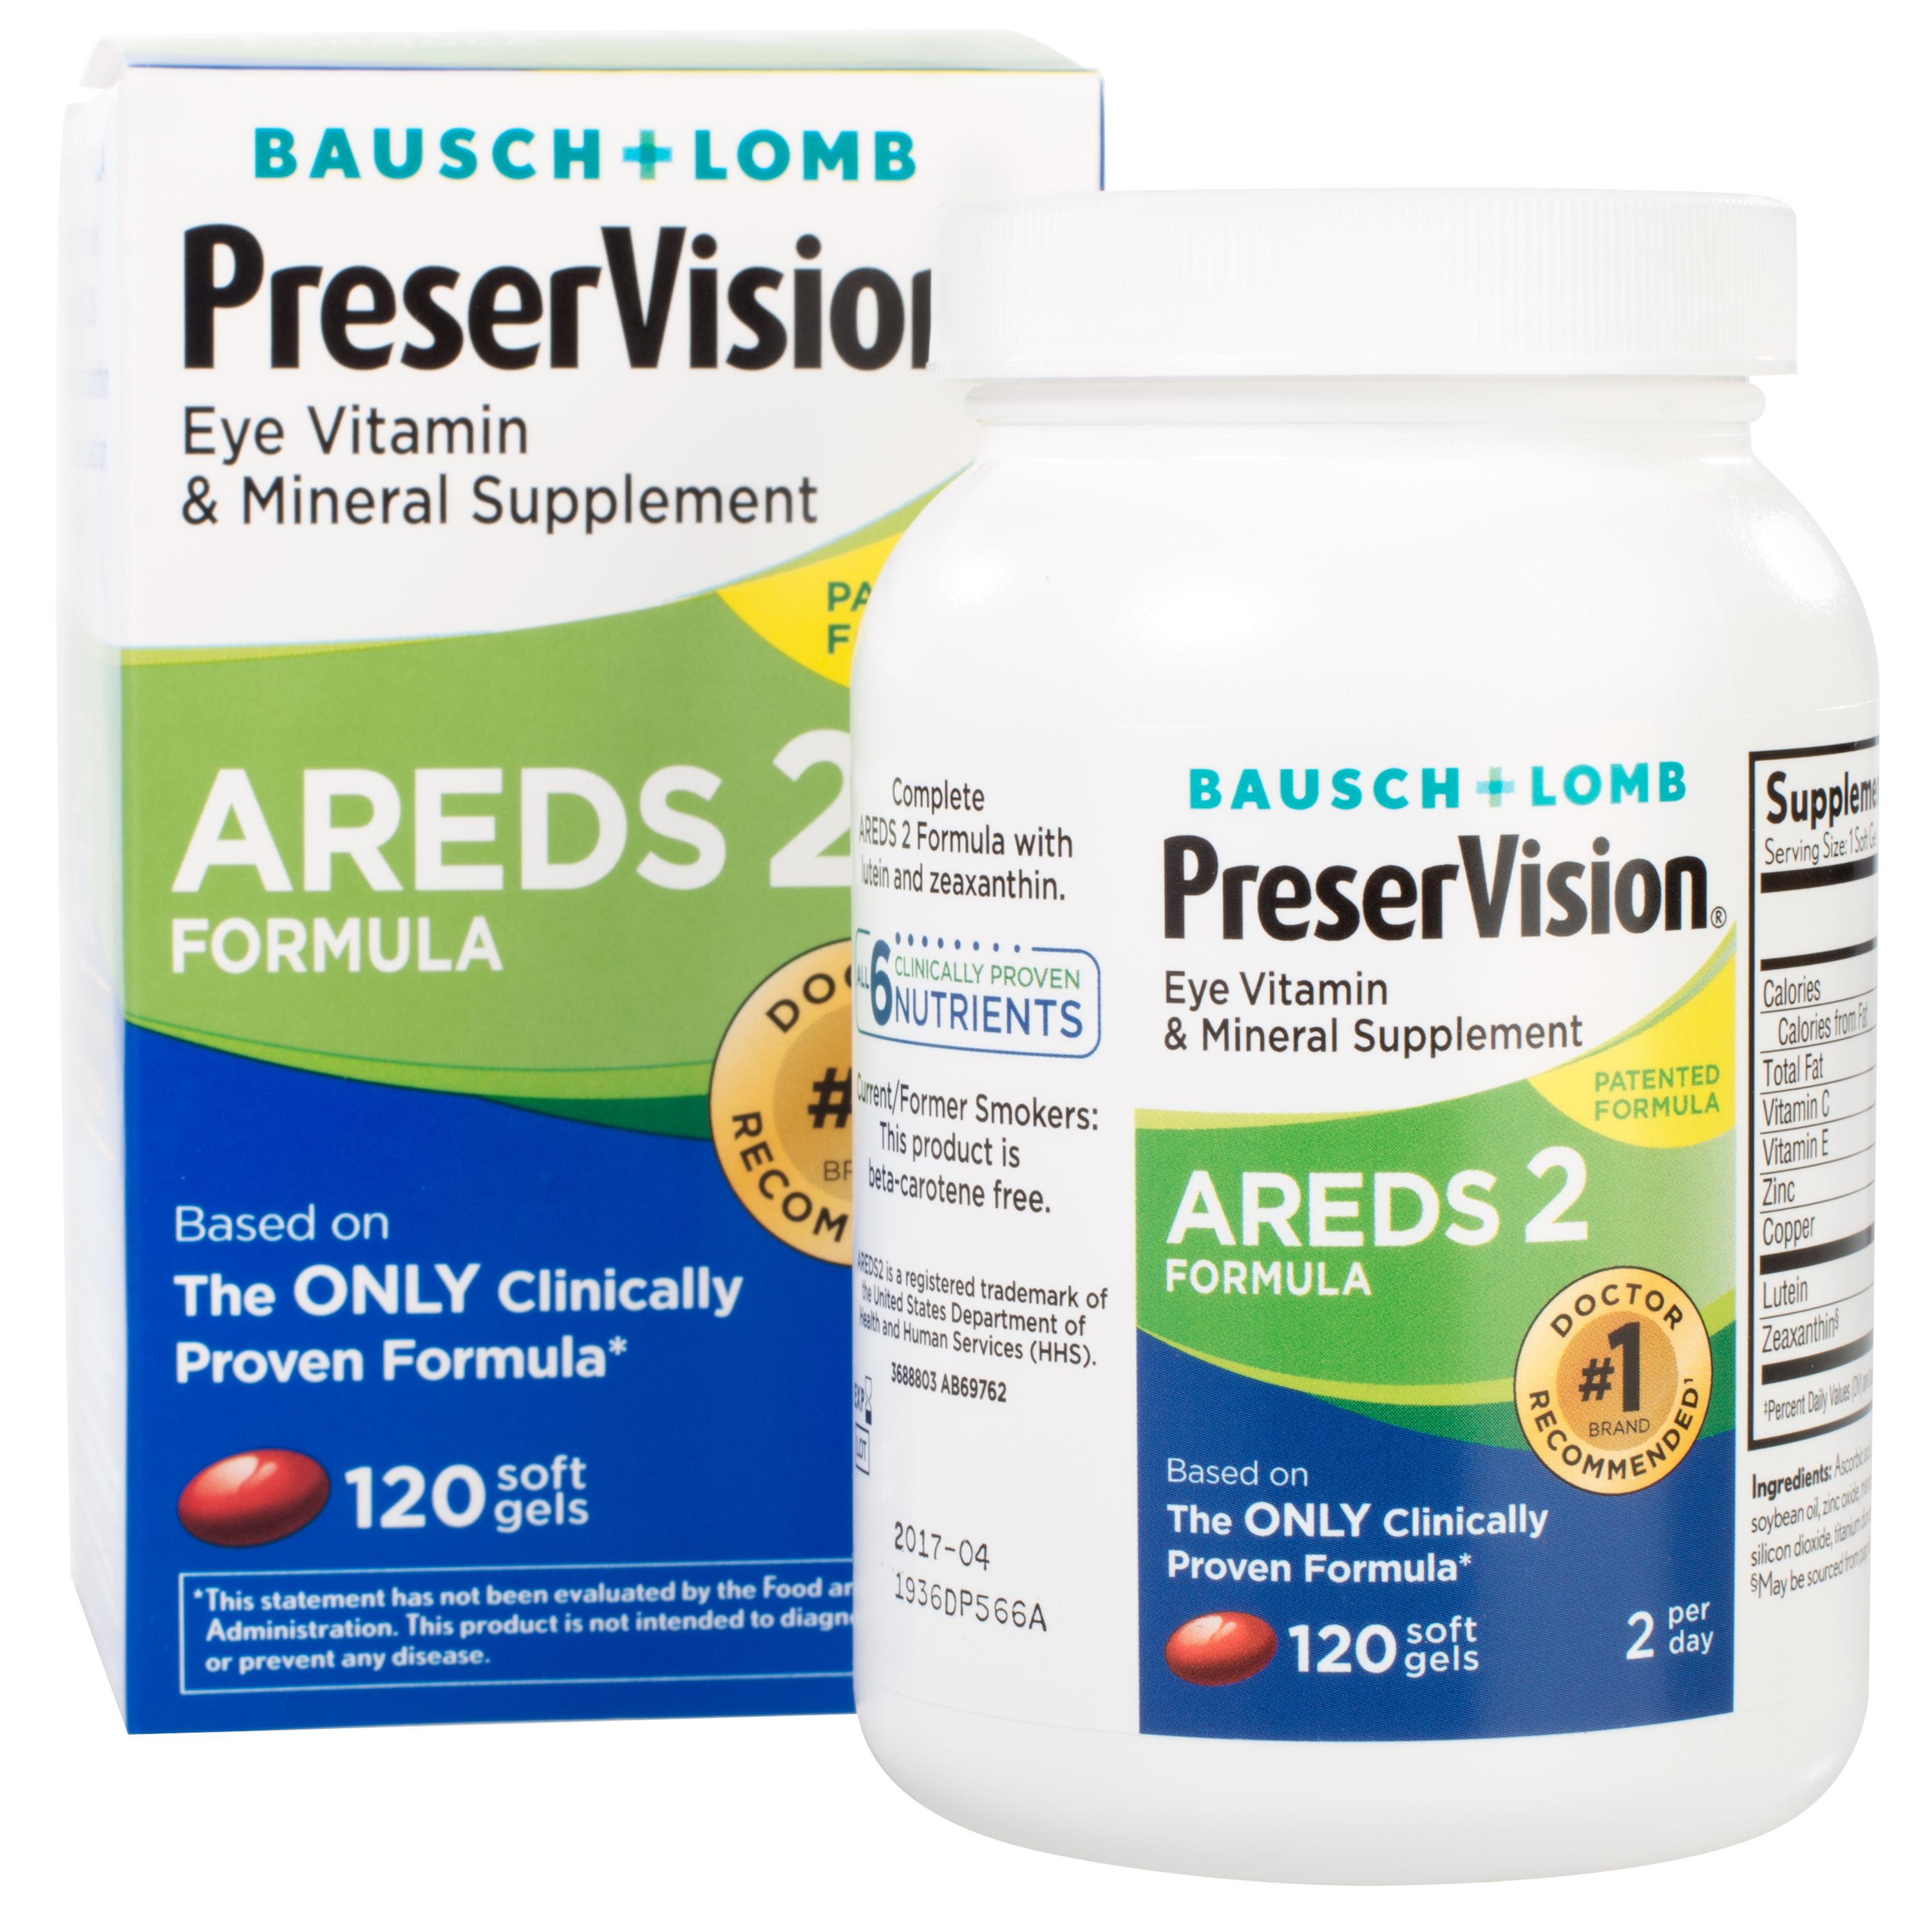 Bausch + Lomb PreserVision AREDS 2 Formula Eye Vitamin Soft Gels, 120 CT Soft Gels